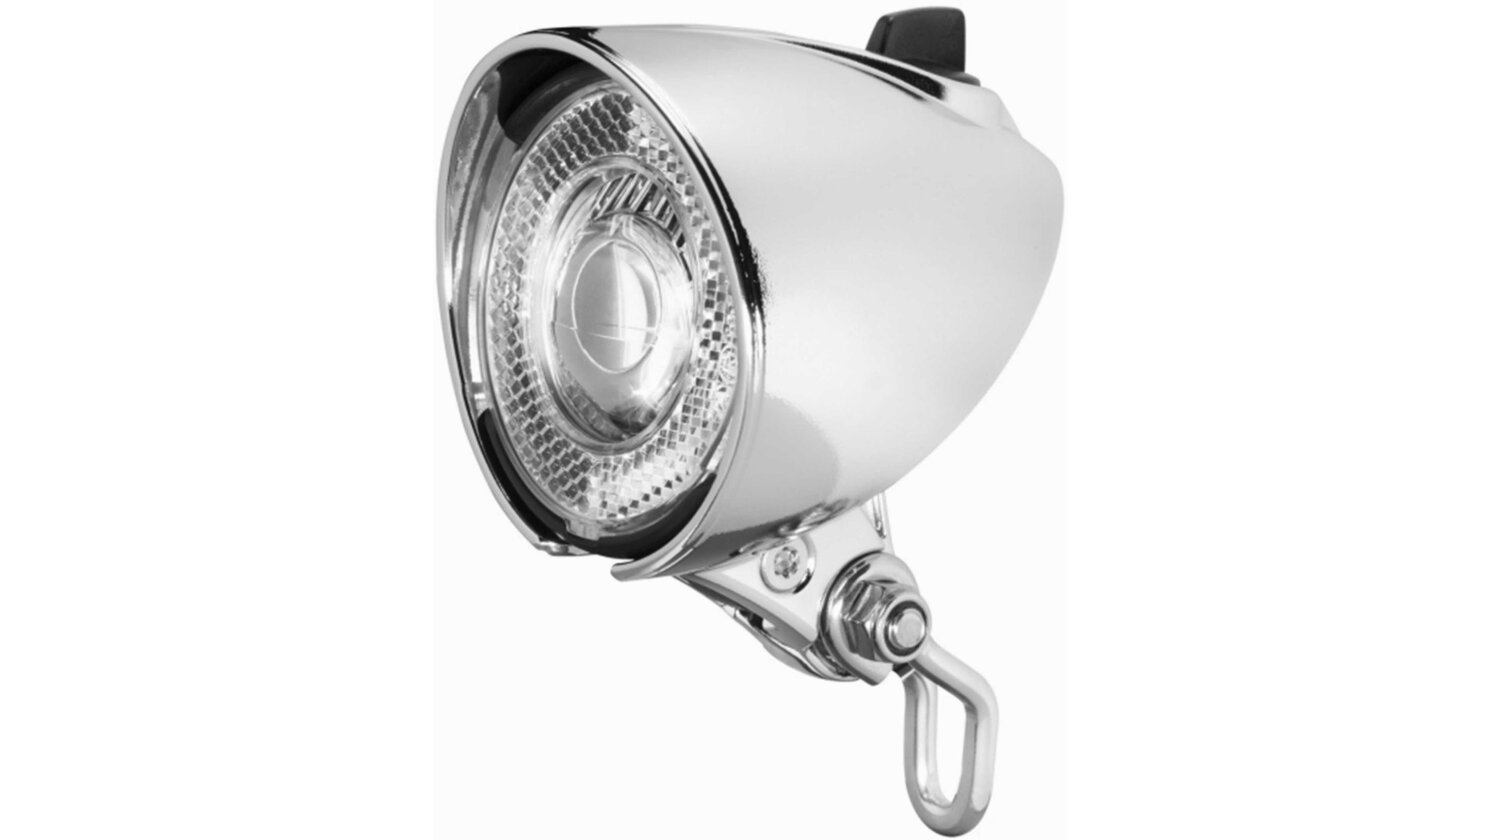 Busch & Müller Lumotec Classic N plus LED Frontlampe